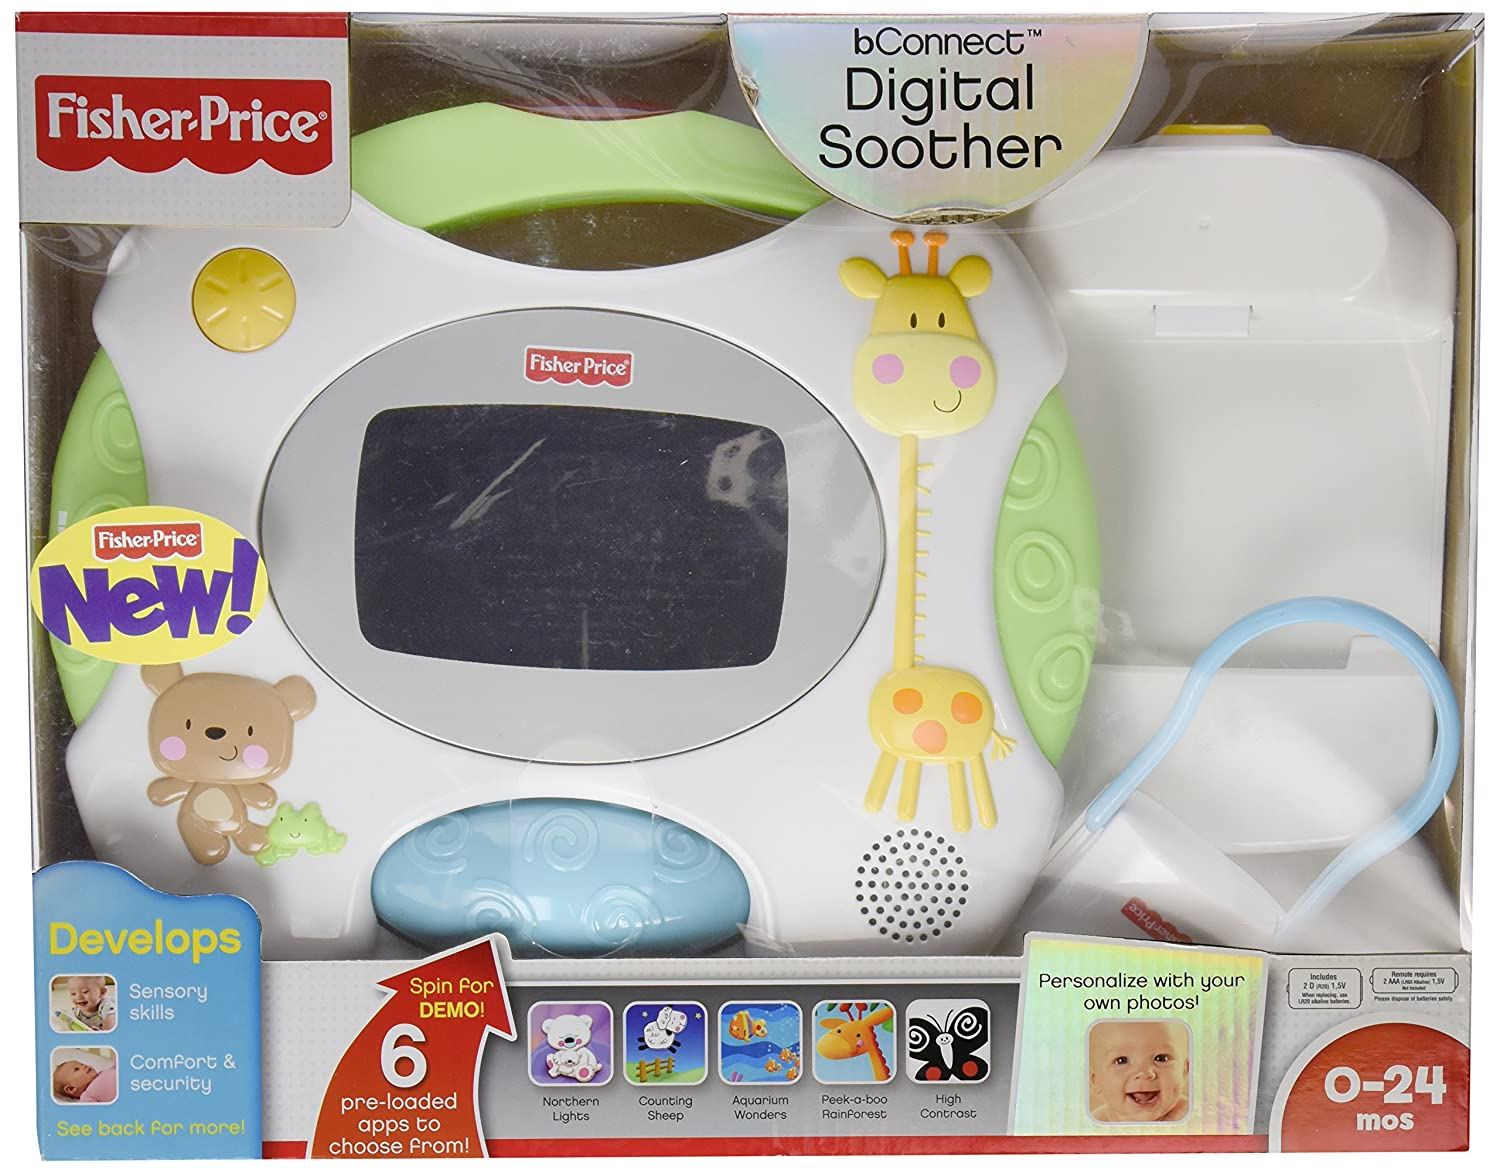 Fisher-Price Connect Digital Soother Fisher Price W9894 ds-tru-EF03F37B iBaby; be-connect; b-connect; beconnect; Facetime; mobile; sleep-aide; crib toy; baby gear